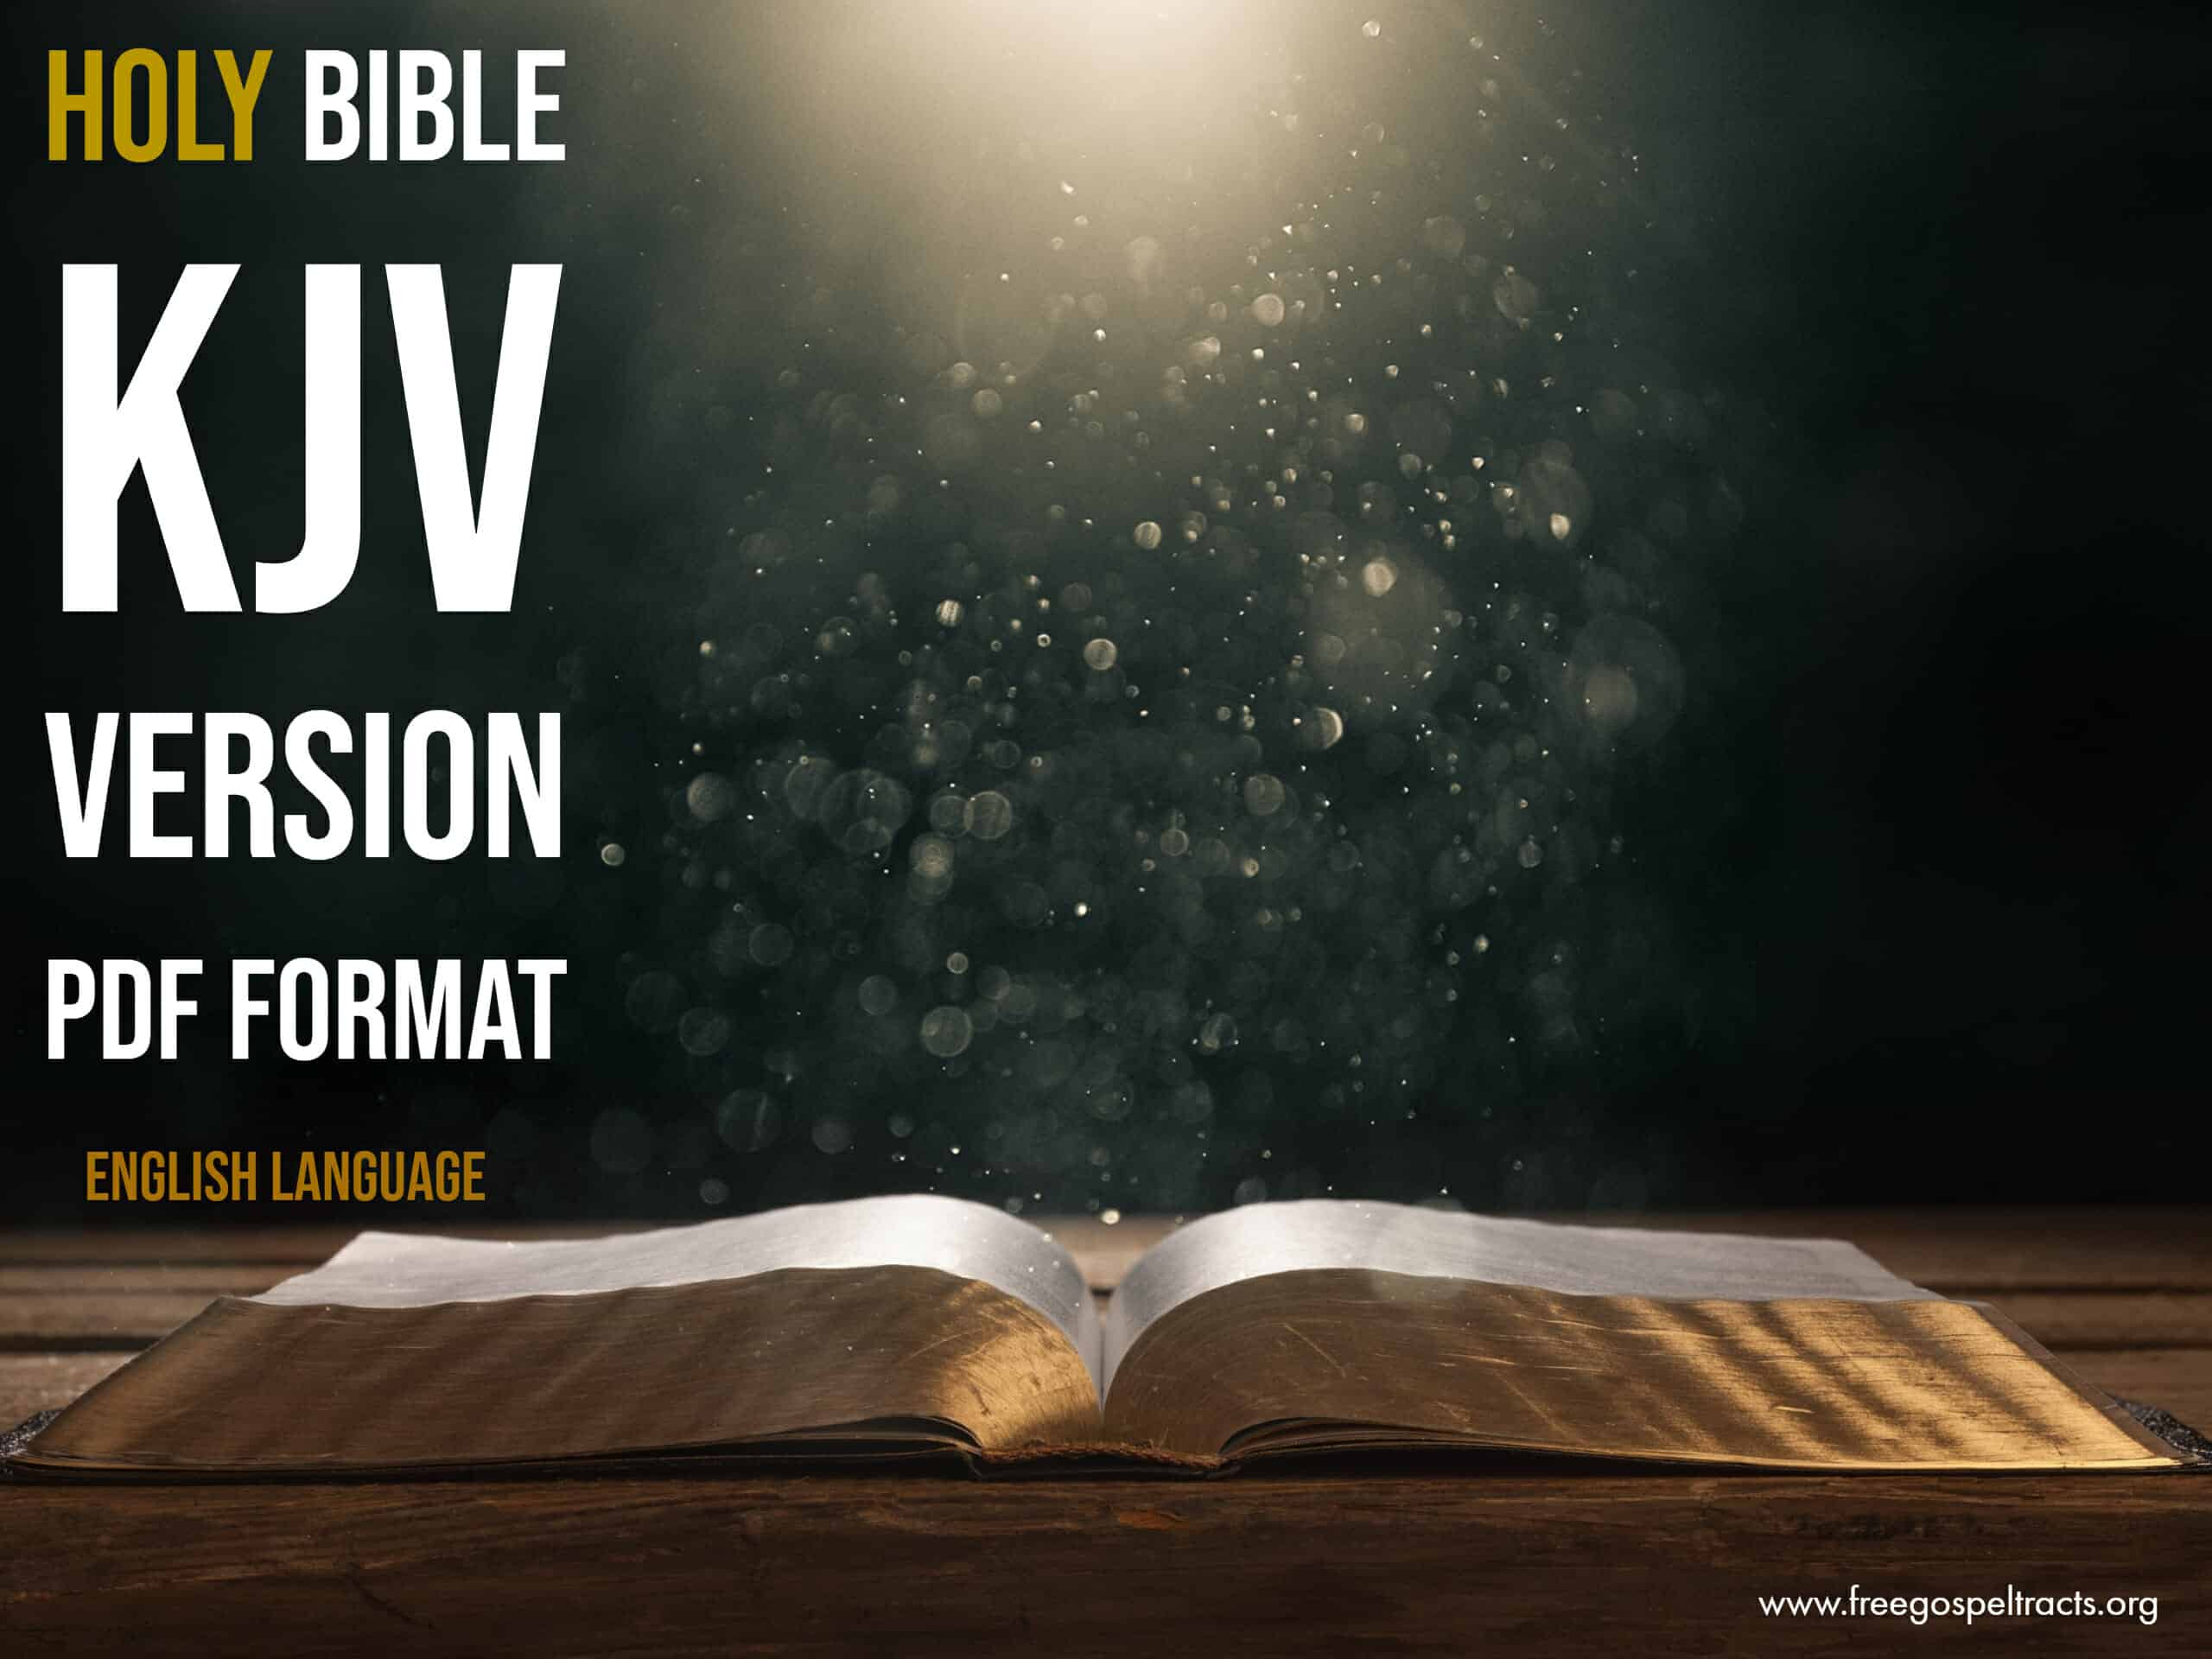 Download the bible in PDF Format. Download KJV BIBLE in PDF